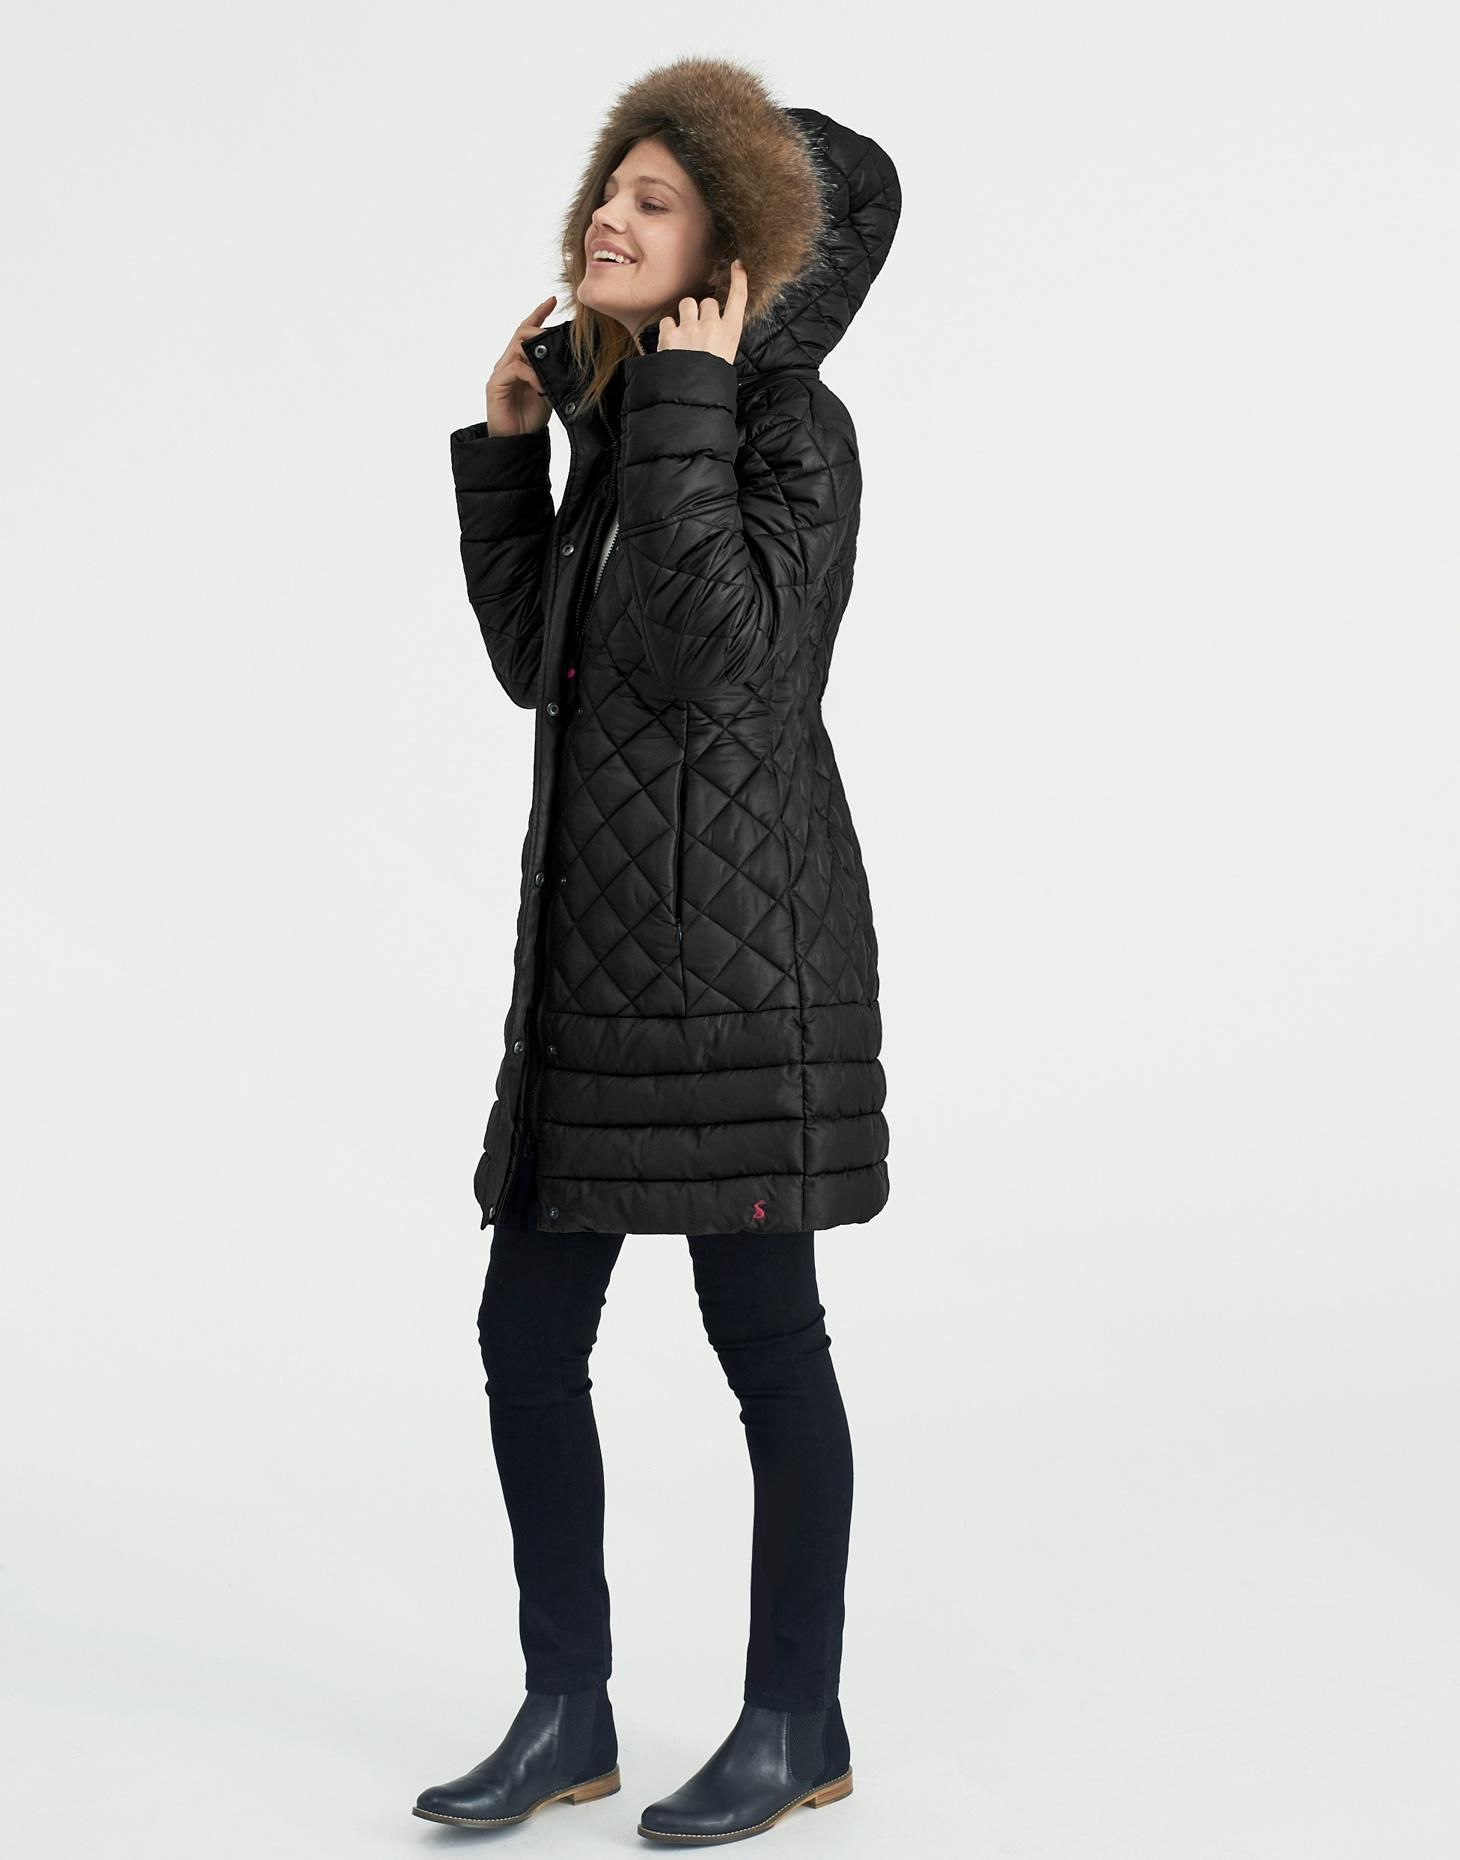 Snowshill Black Padded Jacket | Joules US | My Style | Pinterest ... : joules green quilted jacket - Adamdwight.com